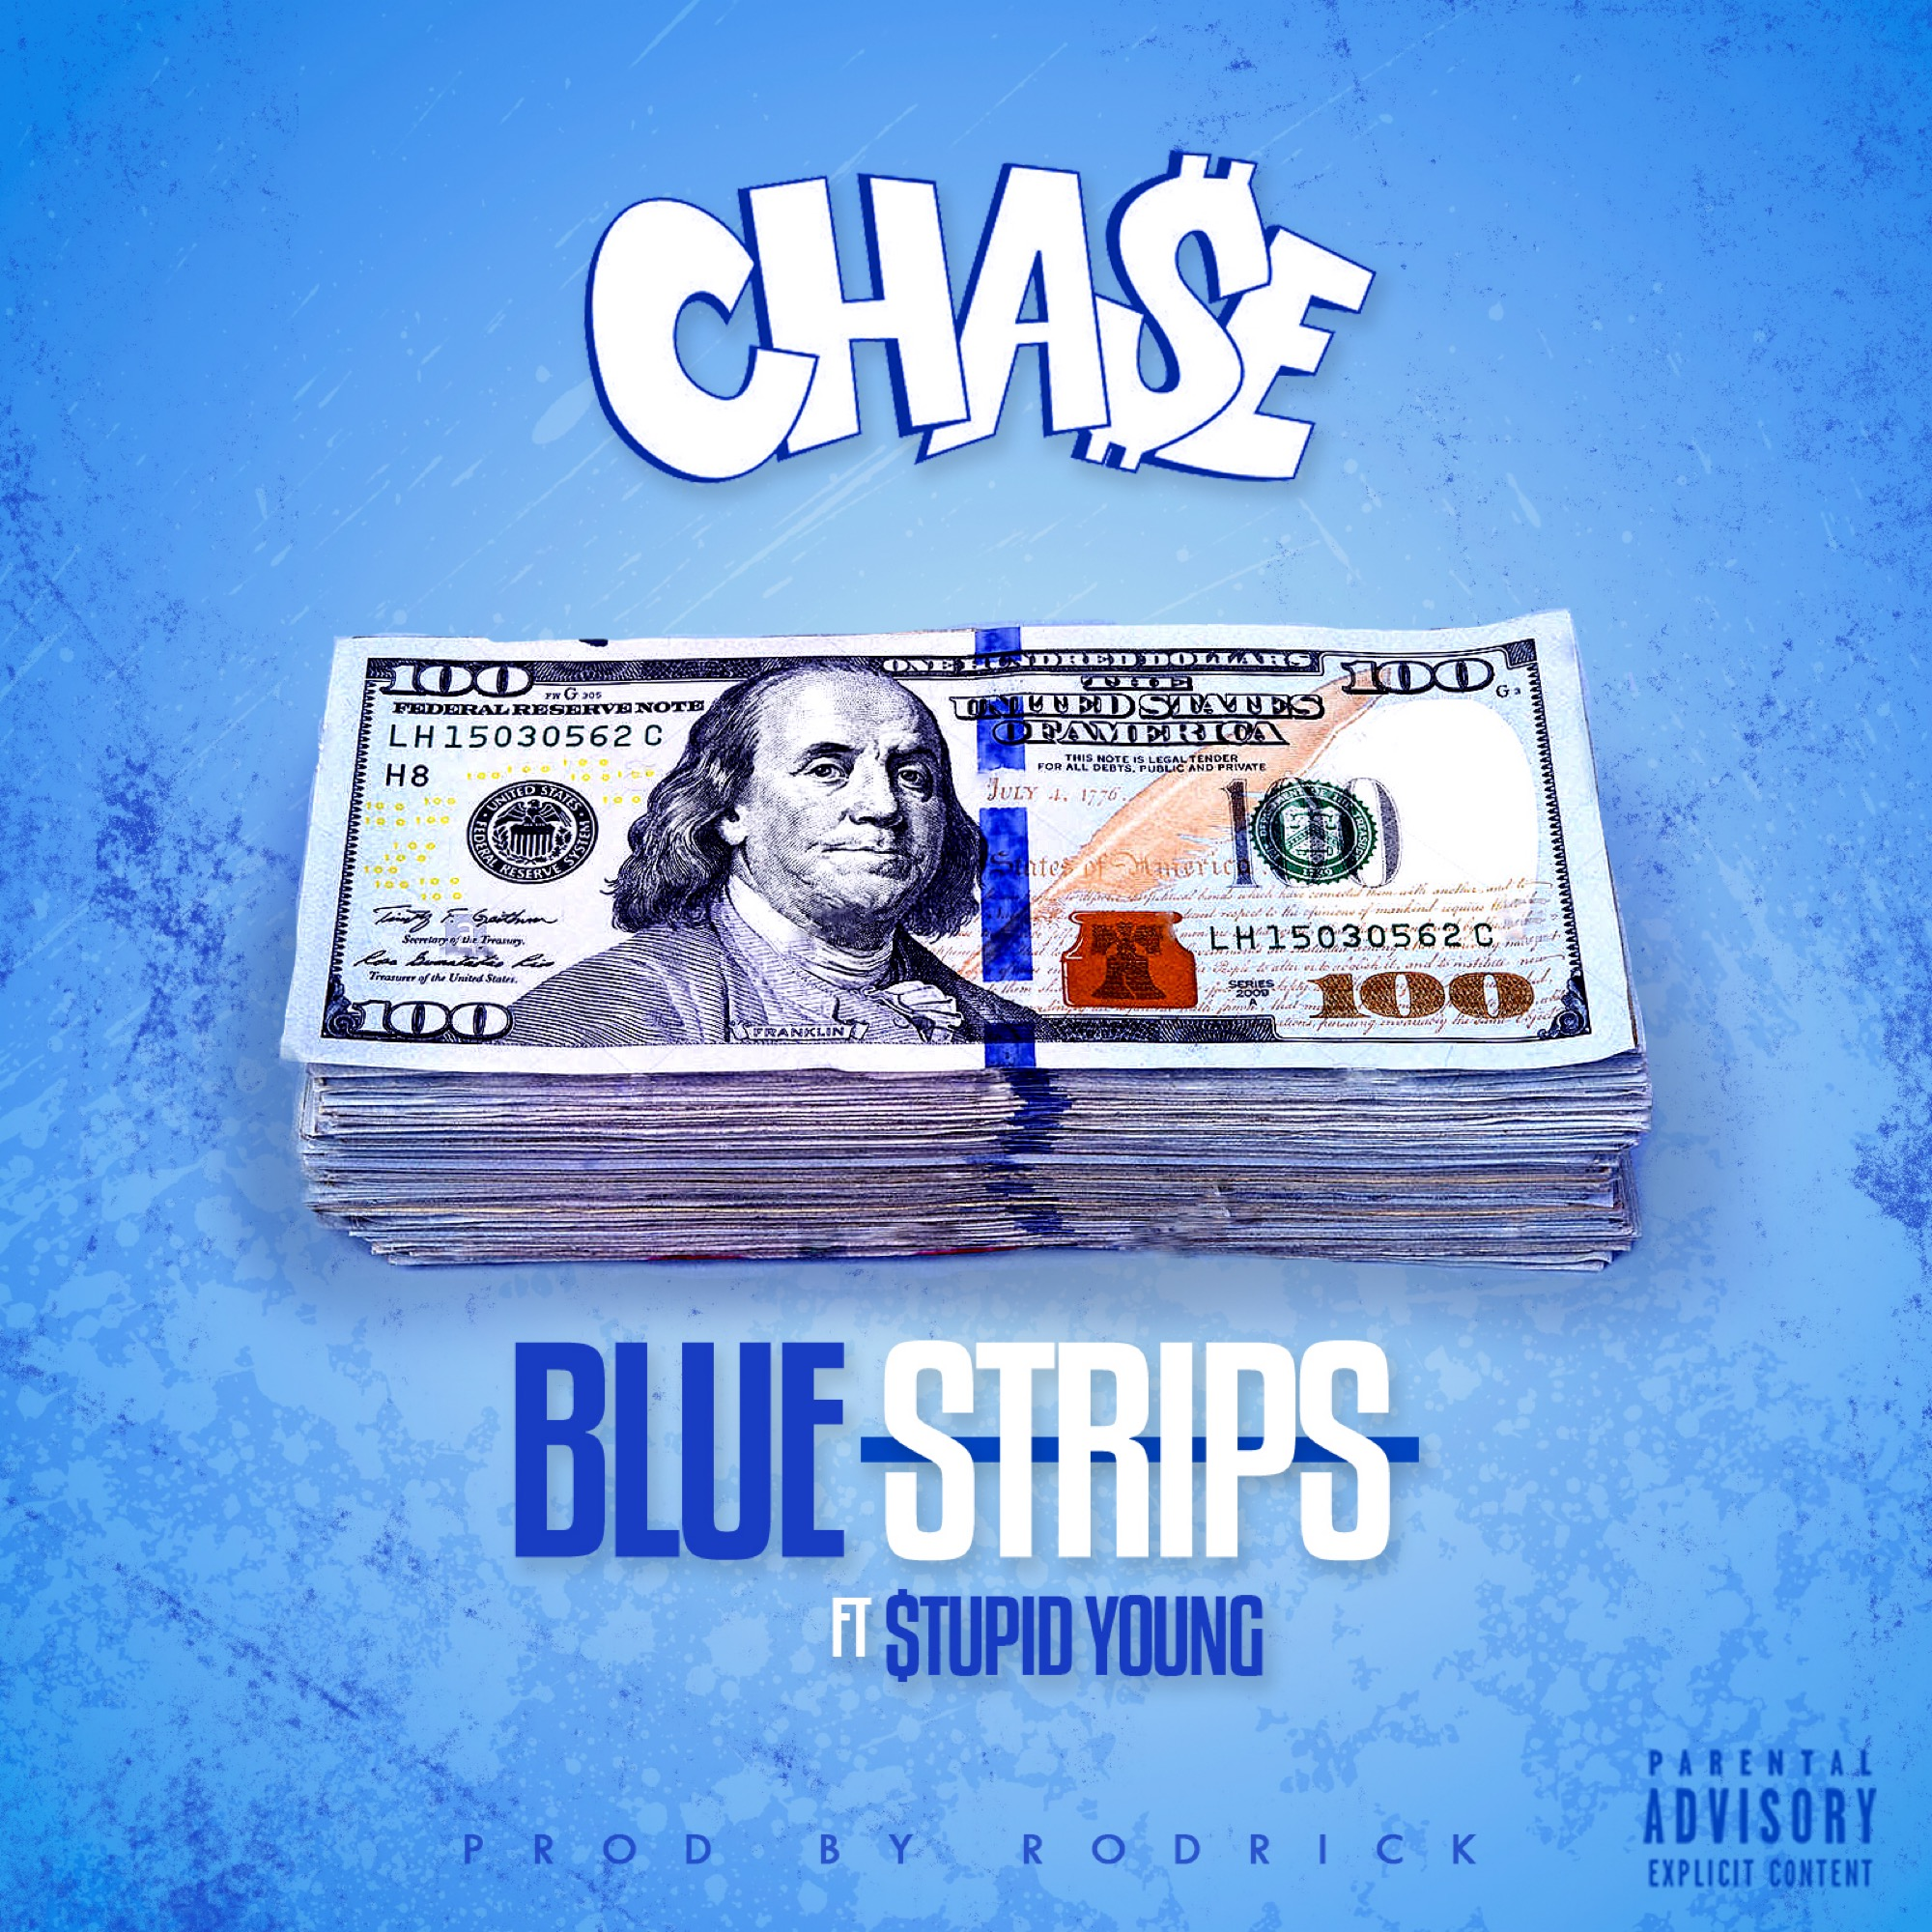 LONG BEACH RAPPERS CHA$E AND $TUPID YOUNG NEW SINGLE BLUE STRIPS